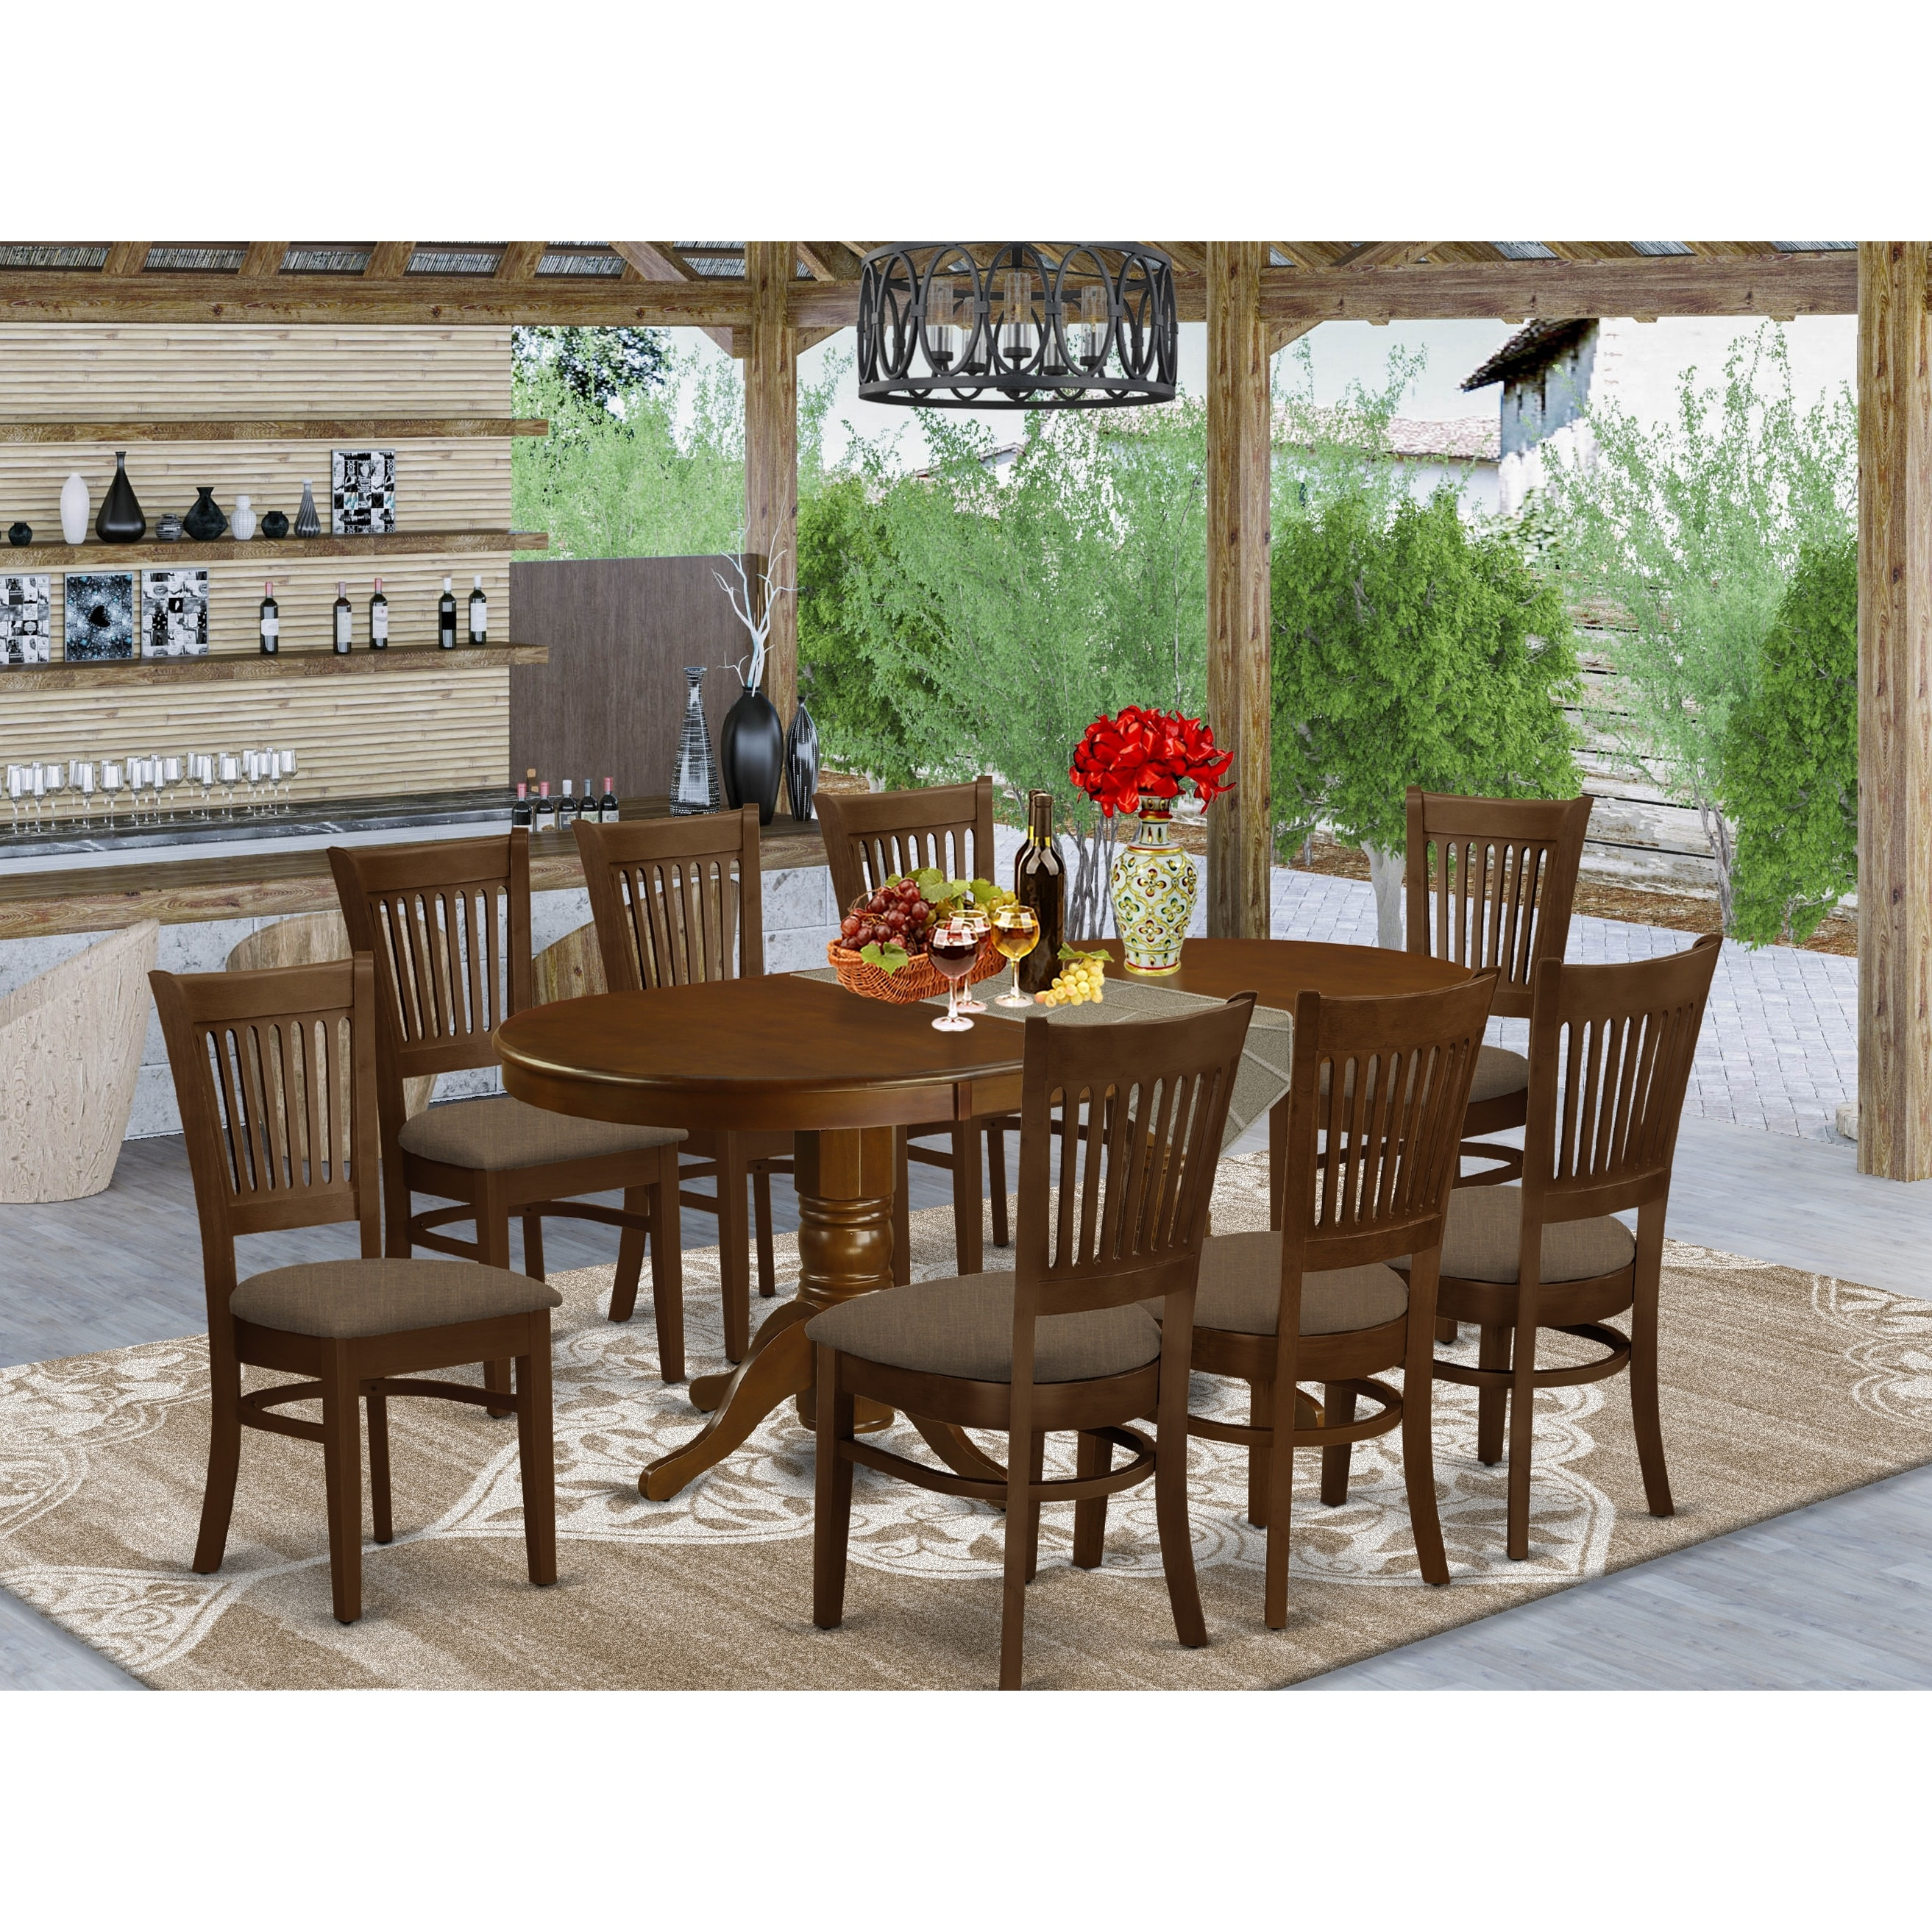 Vanc9 Esp 9 Piece Dining Room Set For 8 Dining Table With A Leaf And 8 Dining Room Chairs On Sale Overstock 11967611